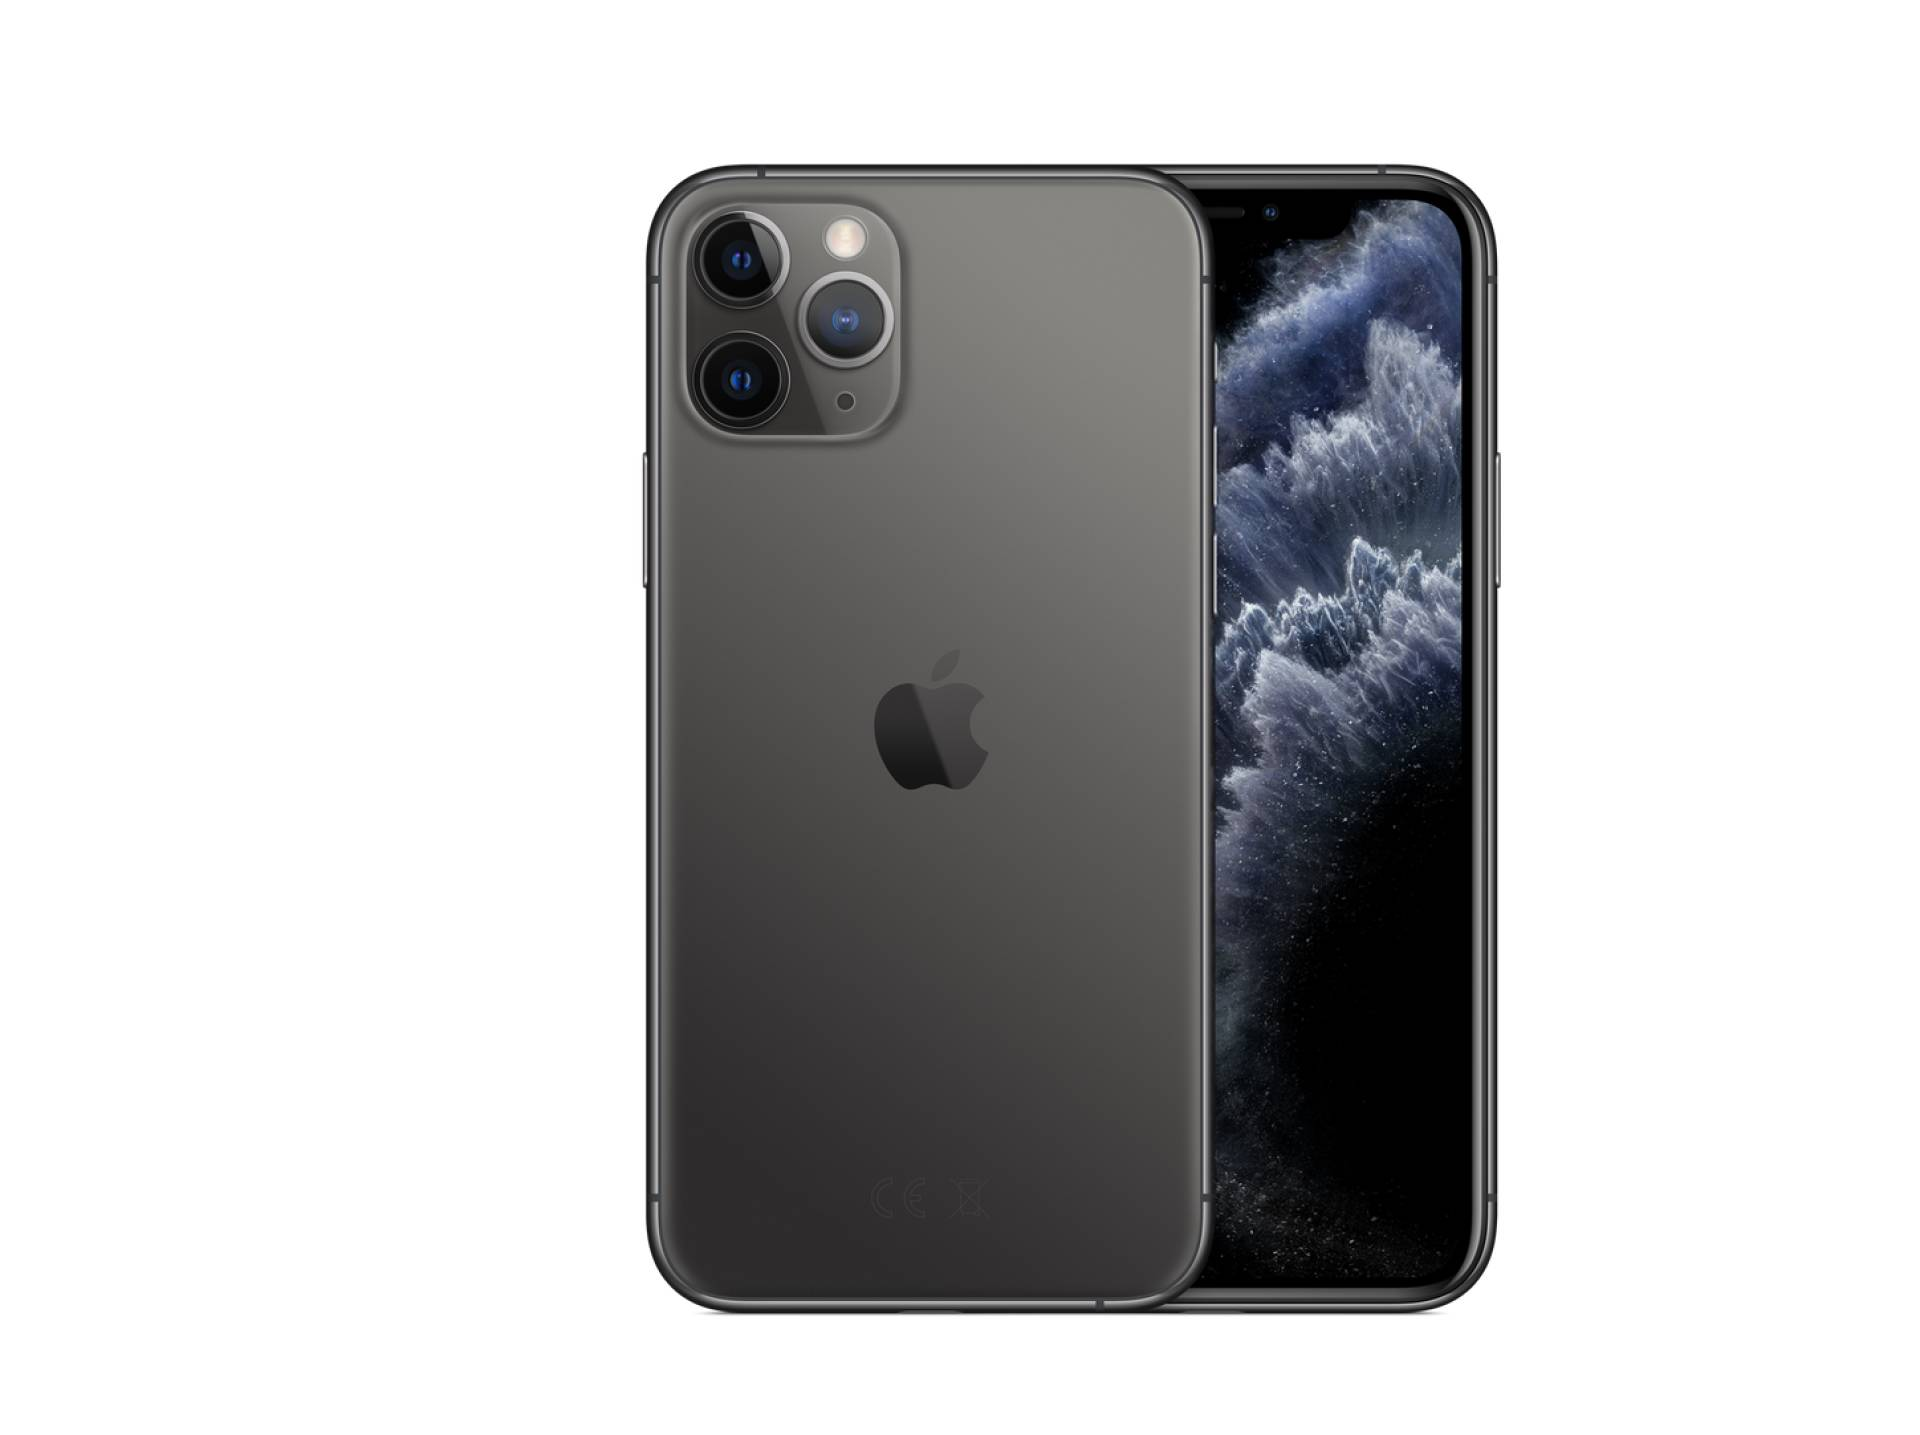 APPLE Custodia in silicone per iPhone 11 Nero  Euronics